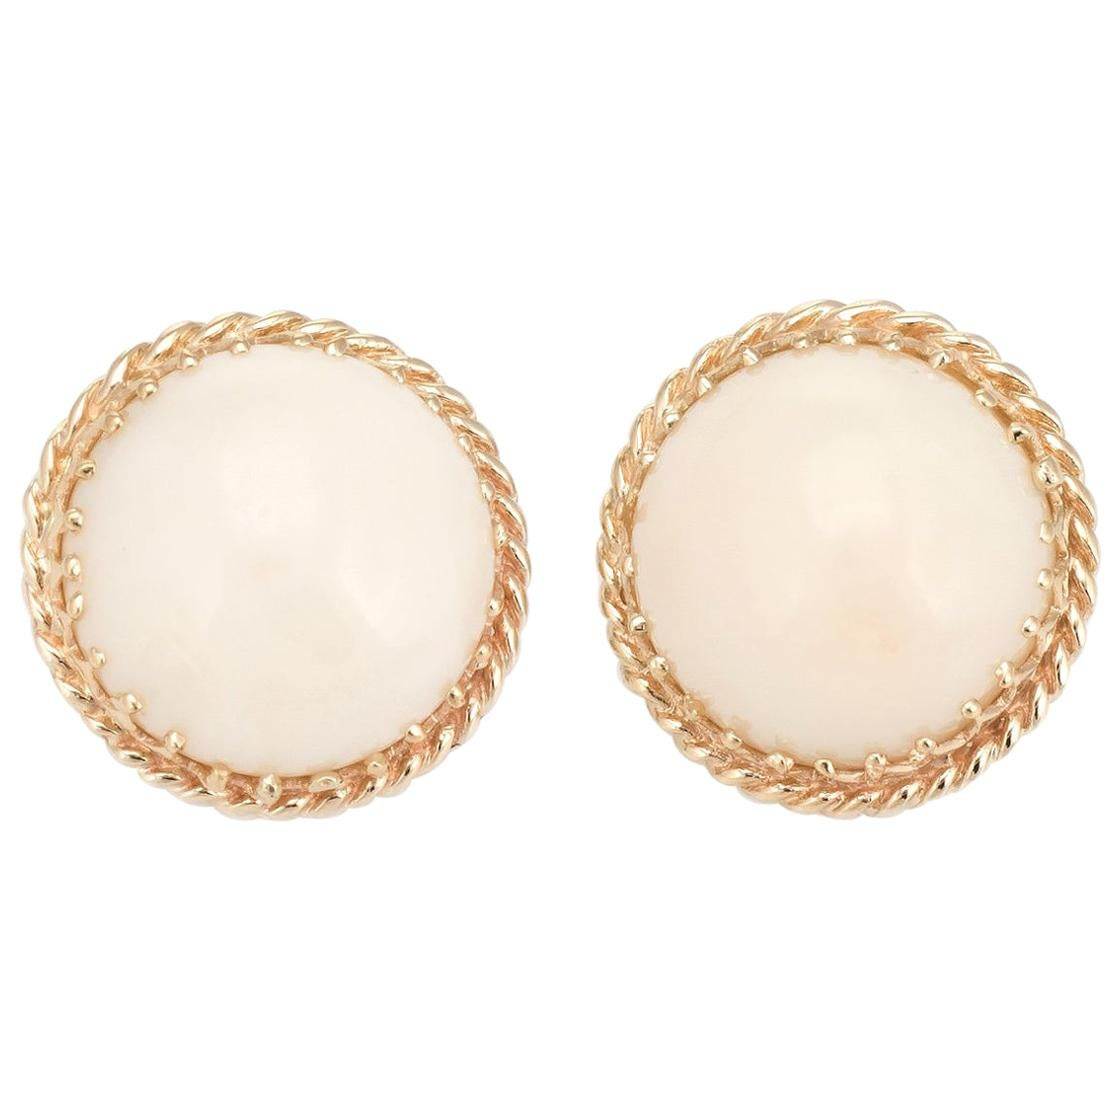 Vintage Angel Skin Coral Earrings 14 Karat Gold Round Button Clip-On Jewelry